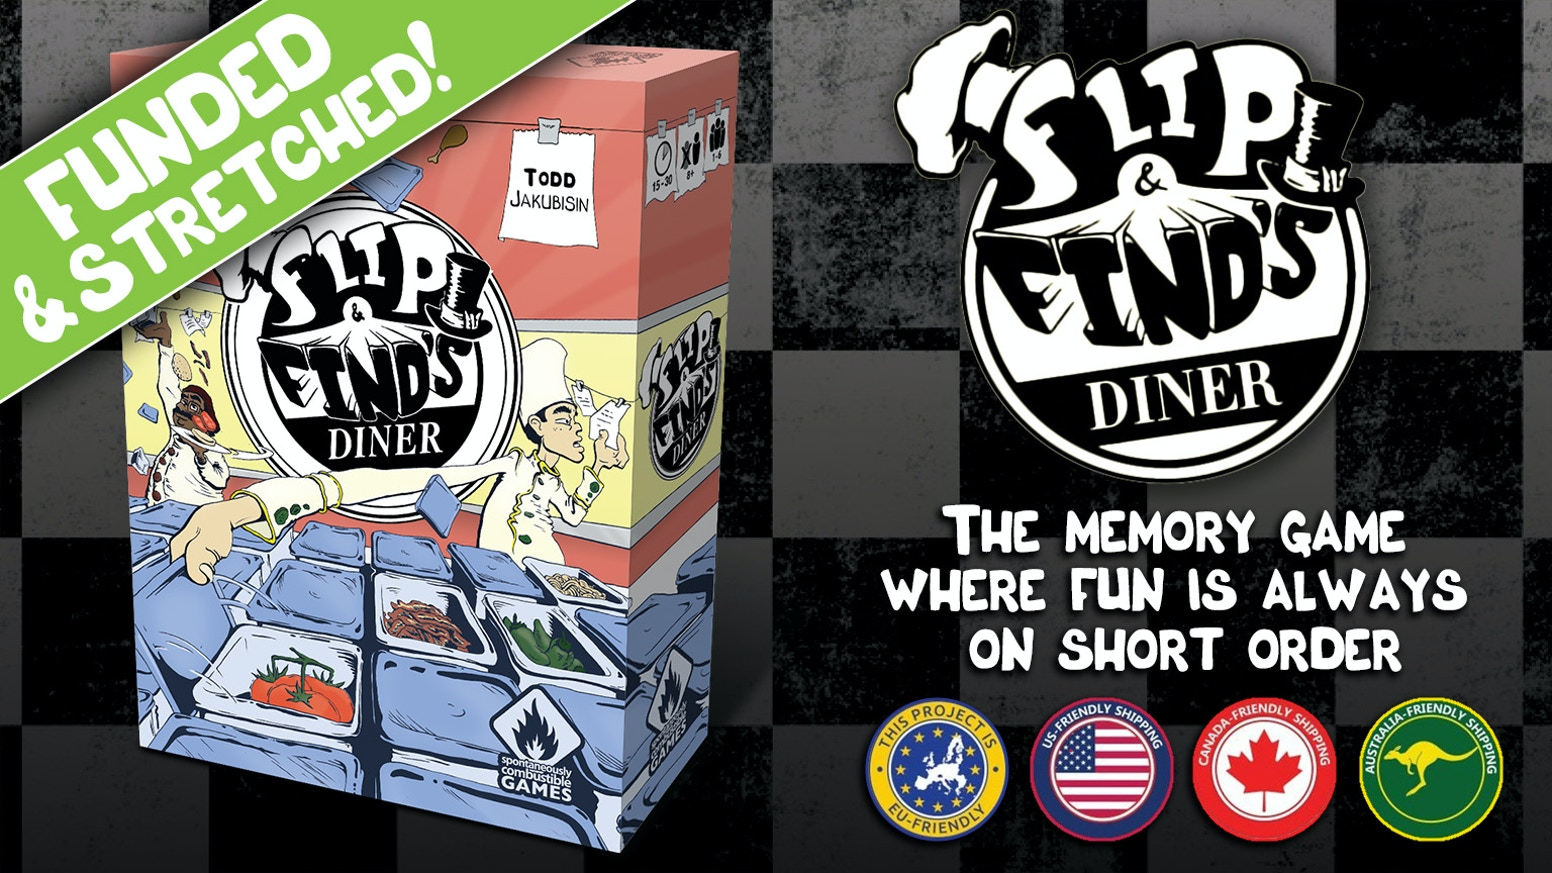 Flip & Find run a Diner that is in complete chaos. In this set-collection memory game, find the ingredients to fill orders & make tips!